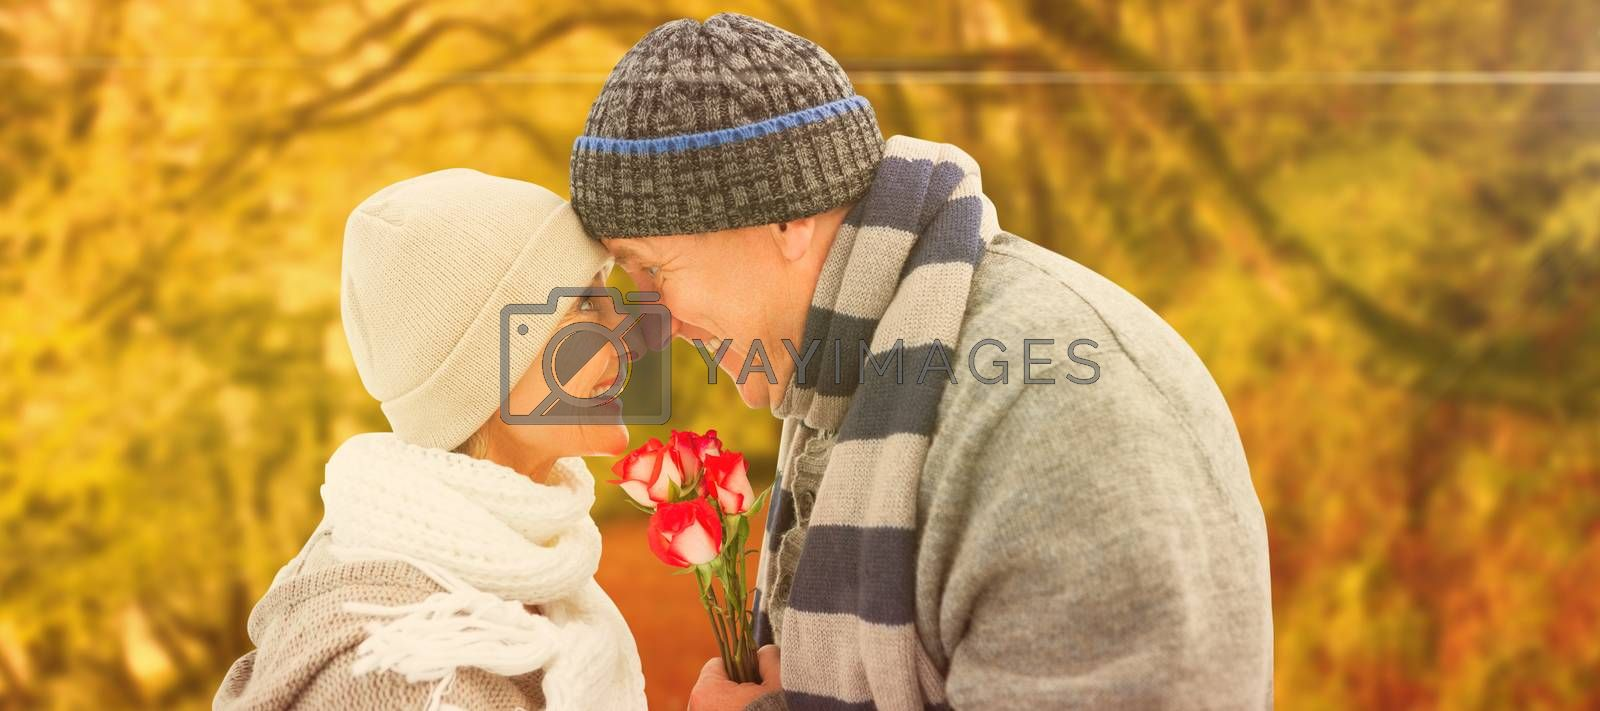 Composite image of happy mature couple in winter clothes with roses by Wavebreakmedia